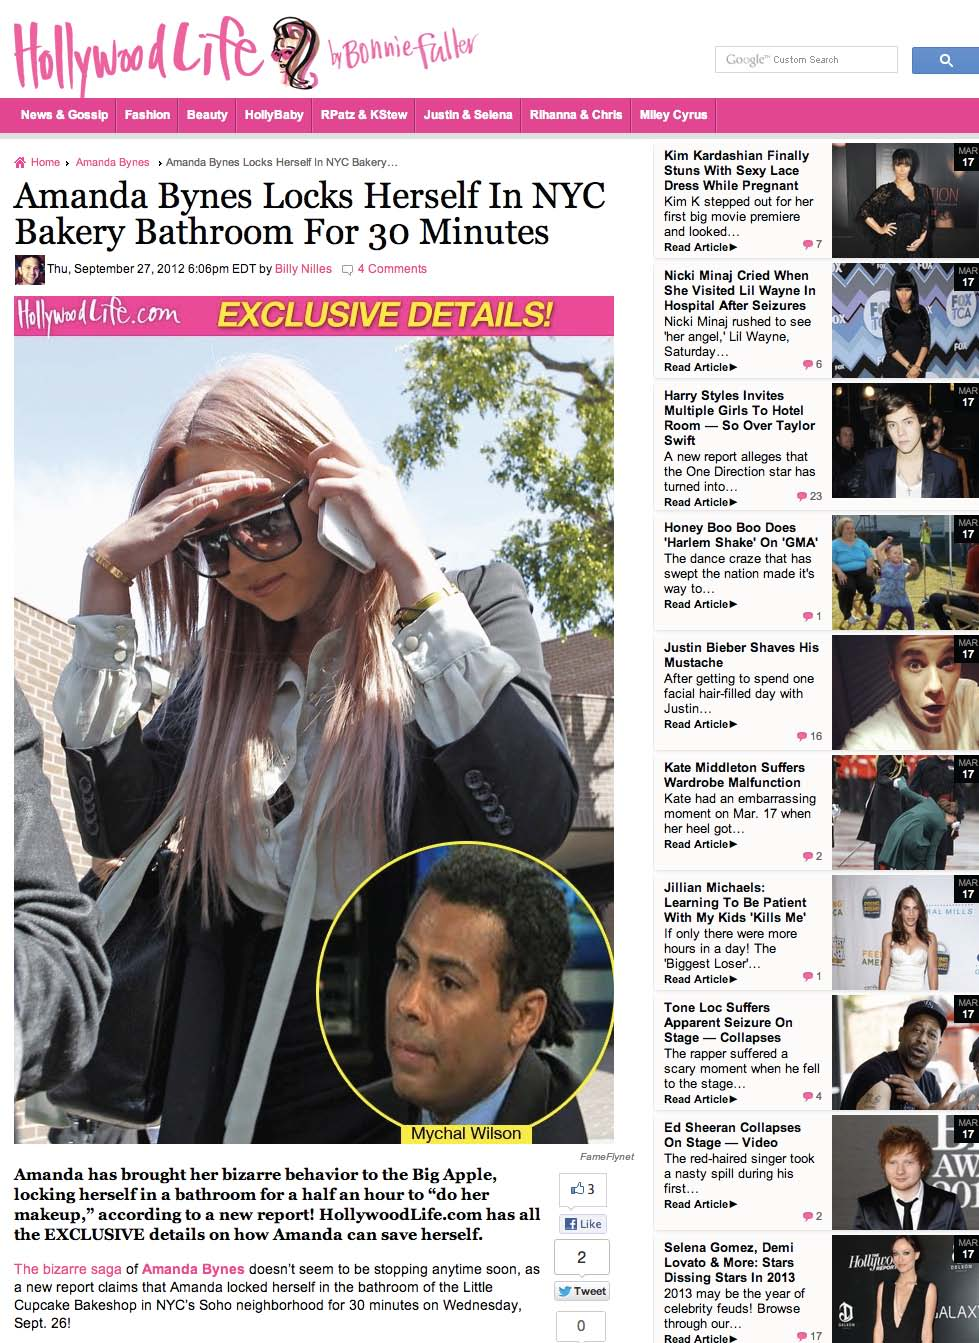 Amanda Bynes Locks Herself In NYC Bakery Bathroom For 30 Minutes